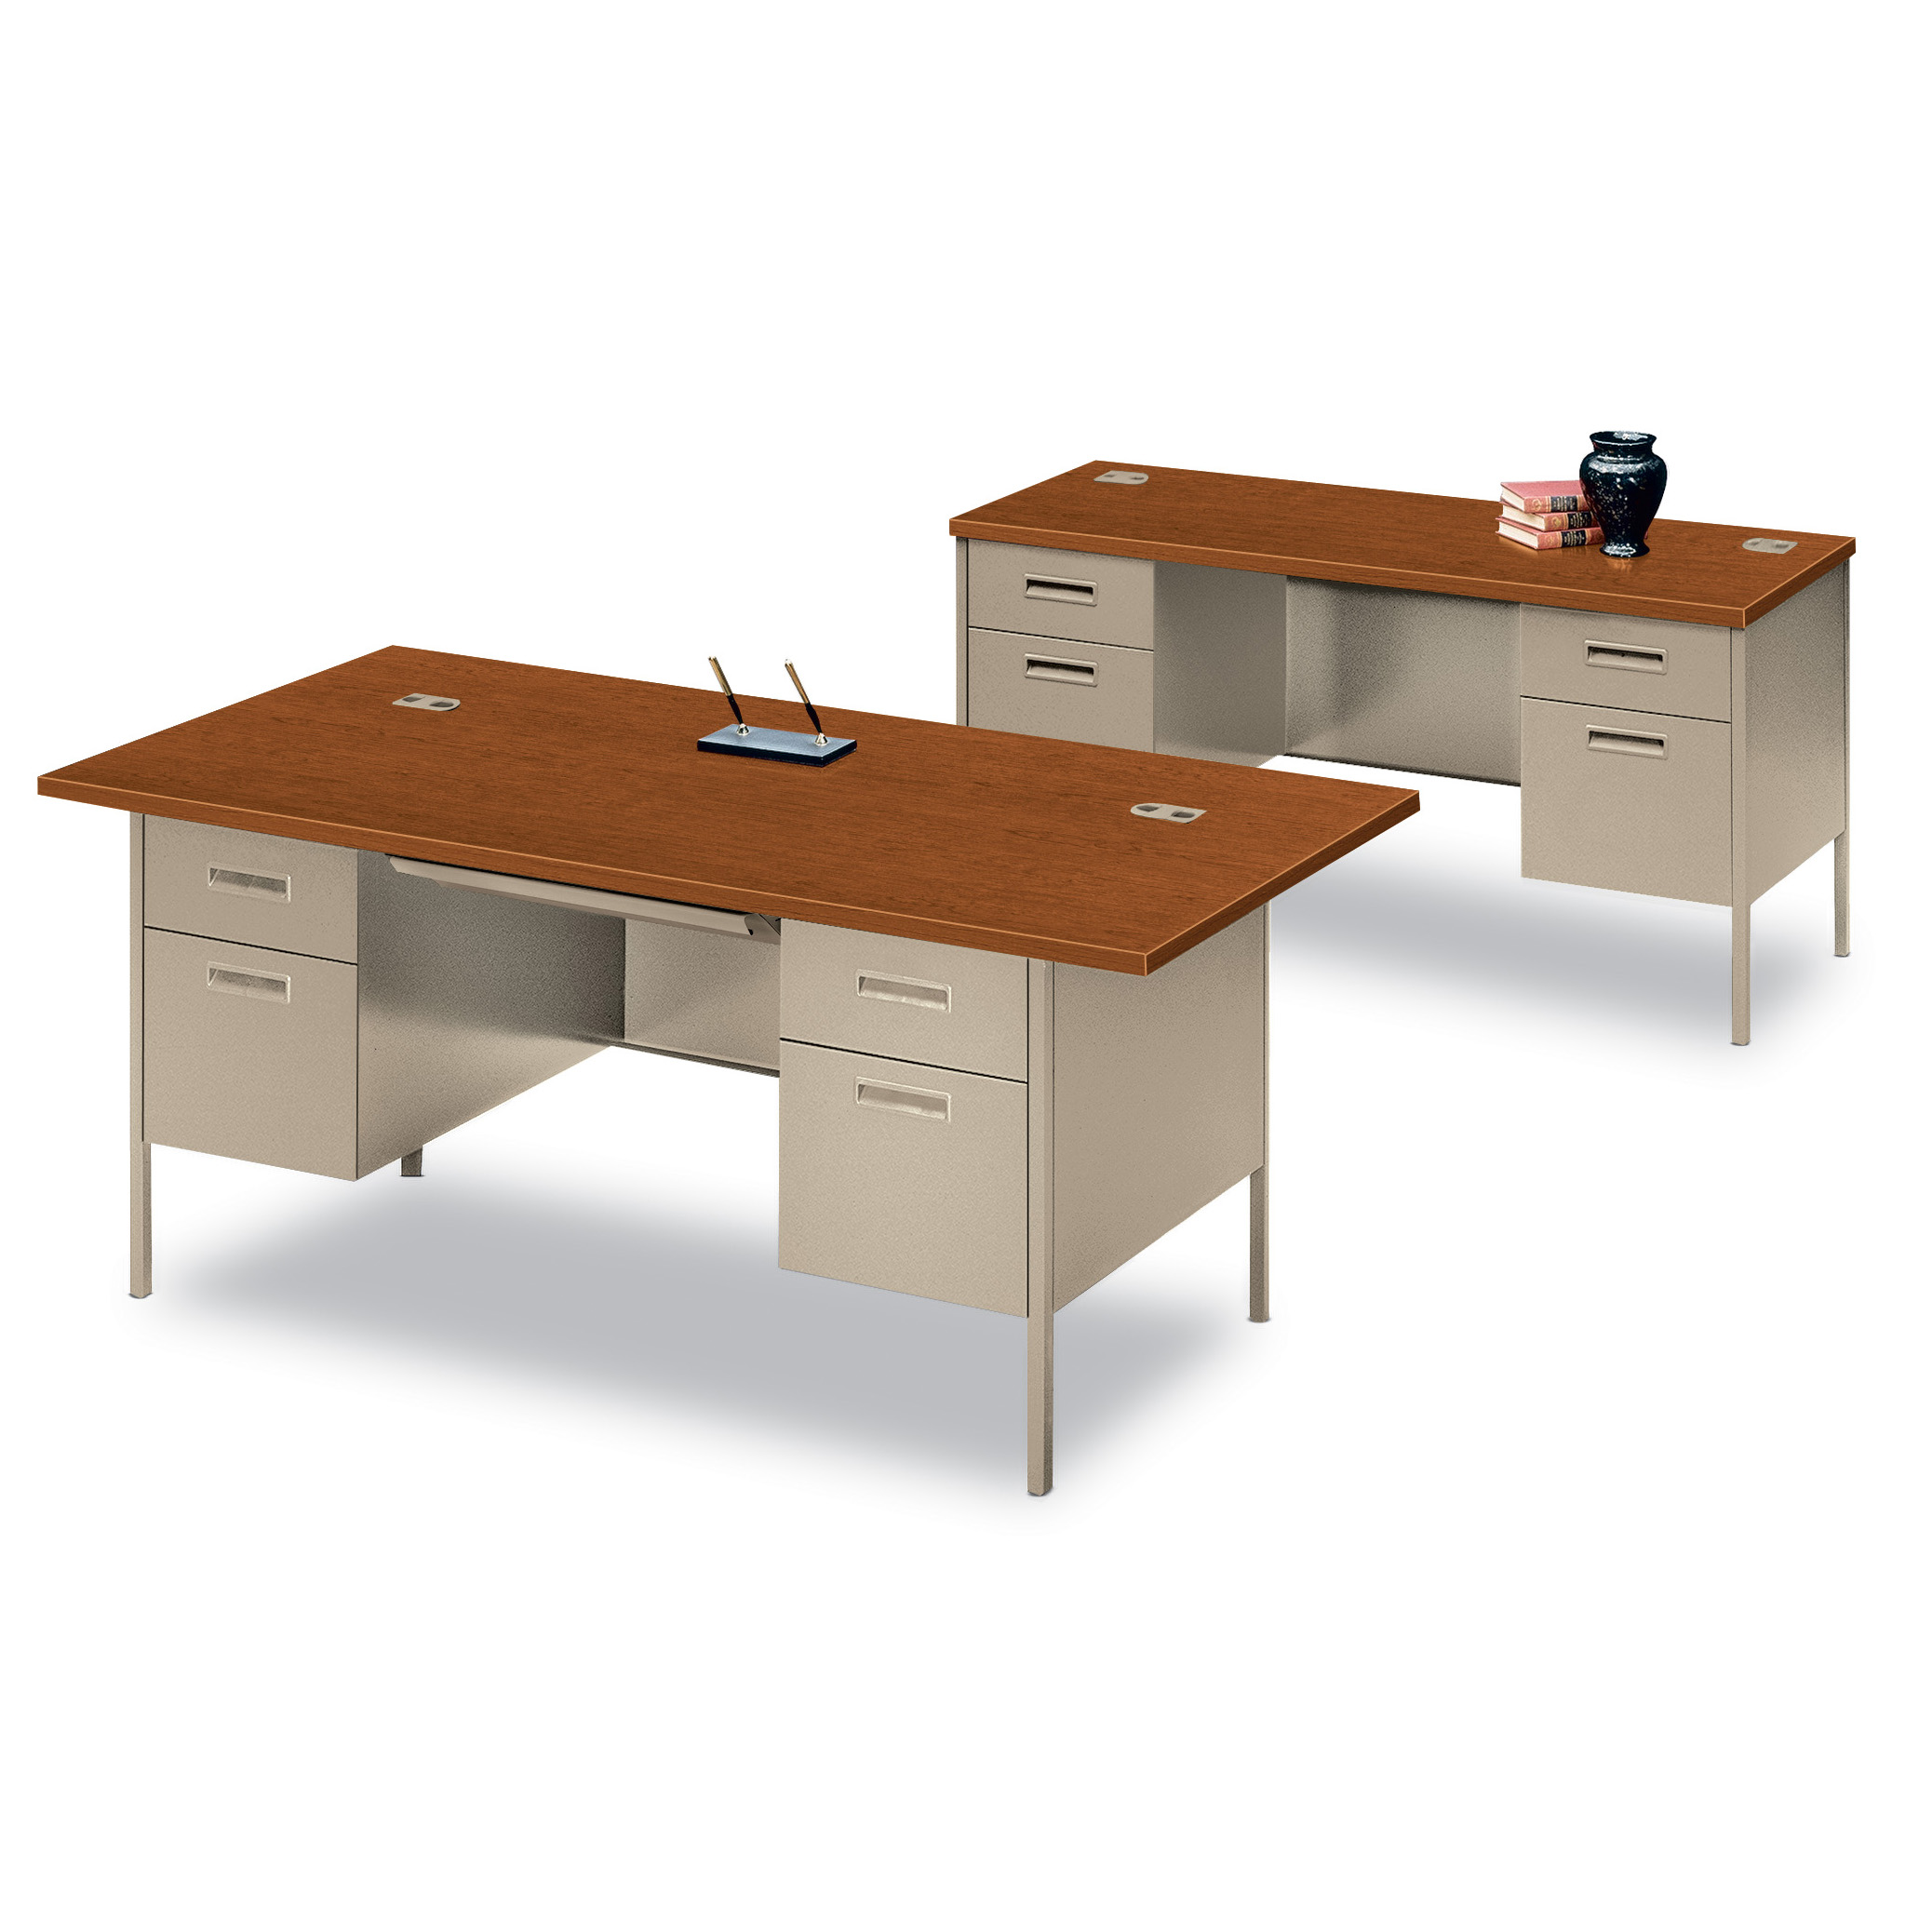 Classic home office fitted furniture from strachan for Classic home tables